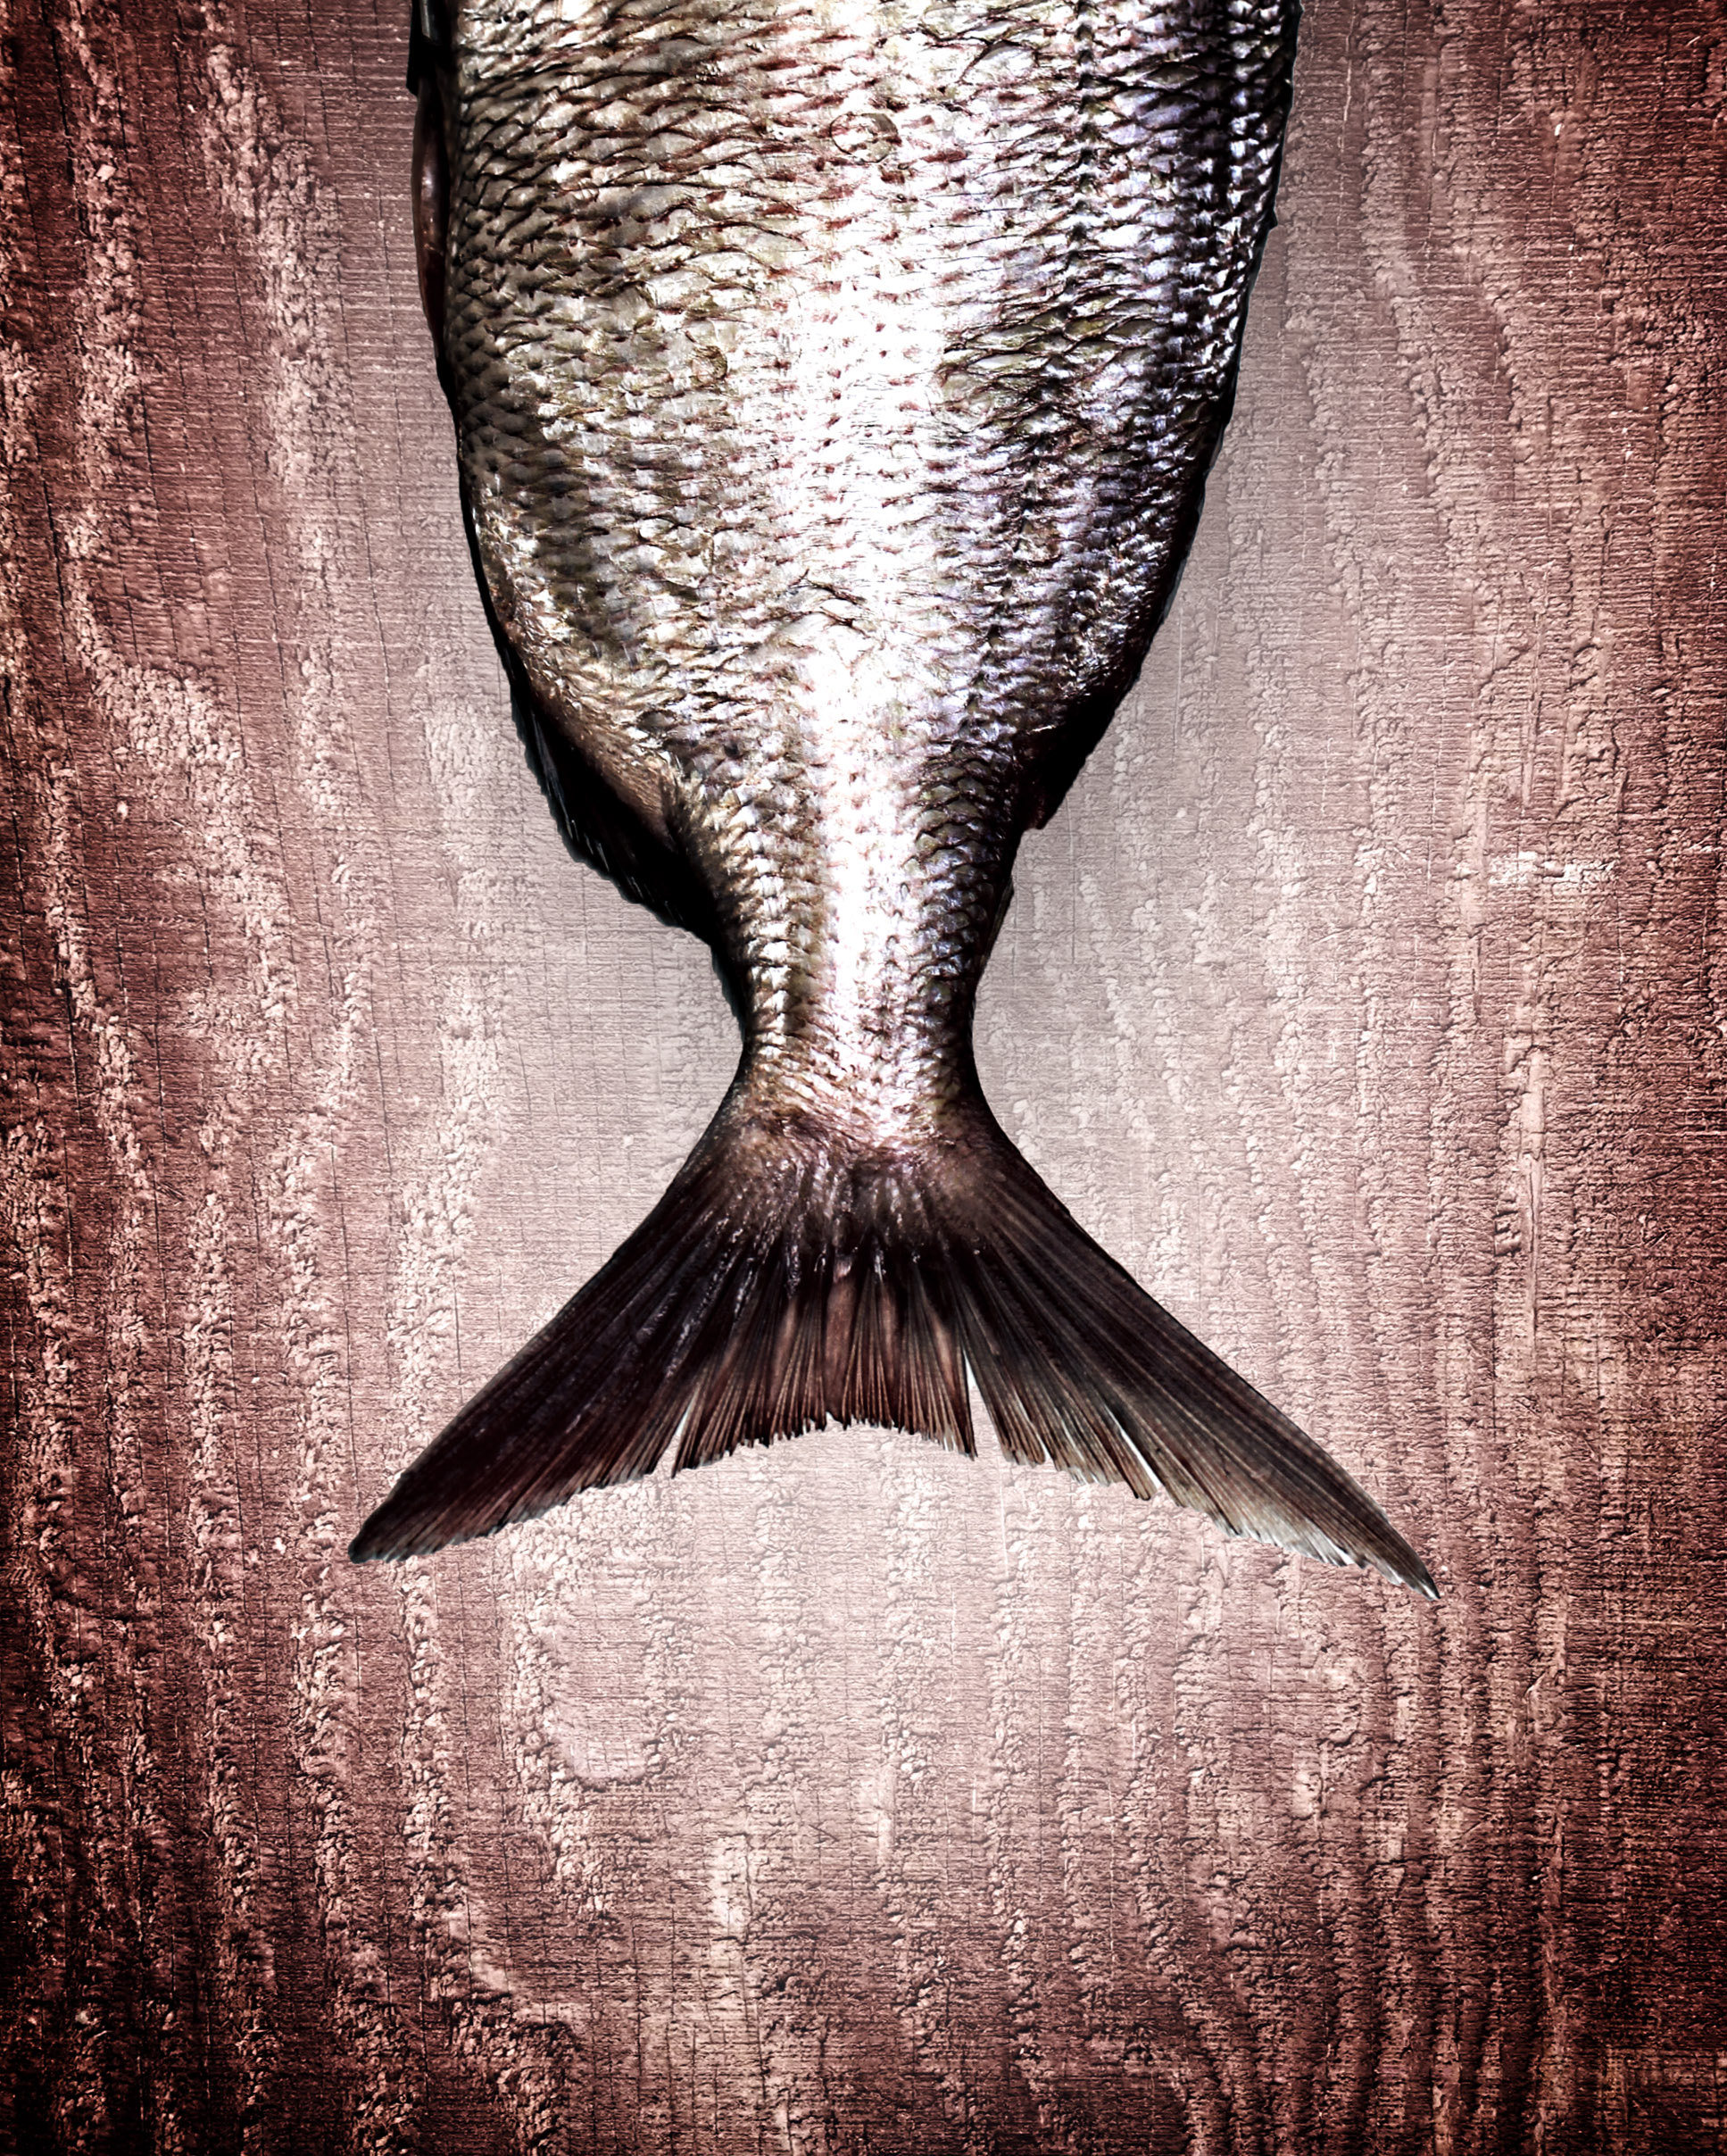 Snapper fish tail on red wood background - healthy eating photo